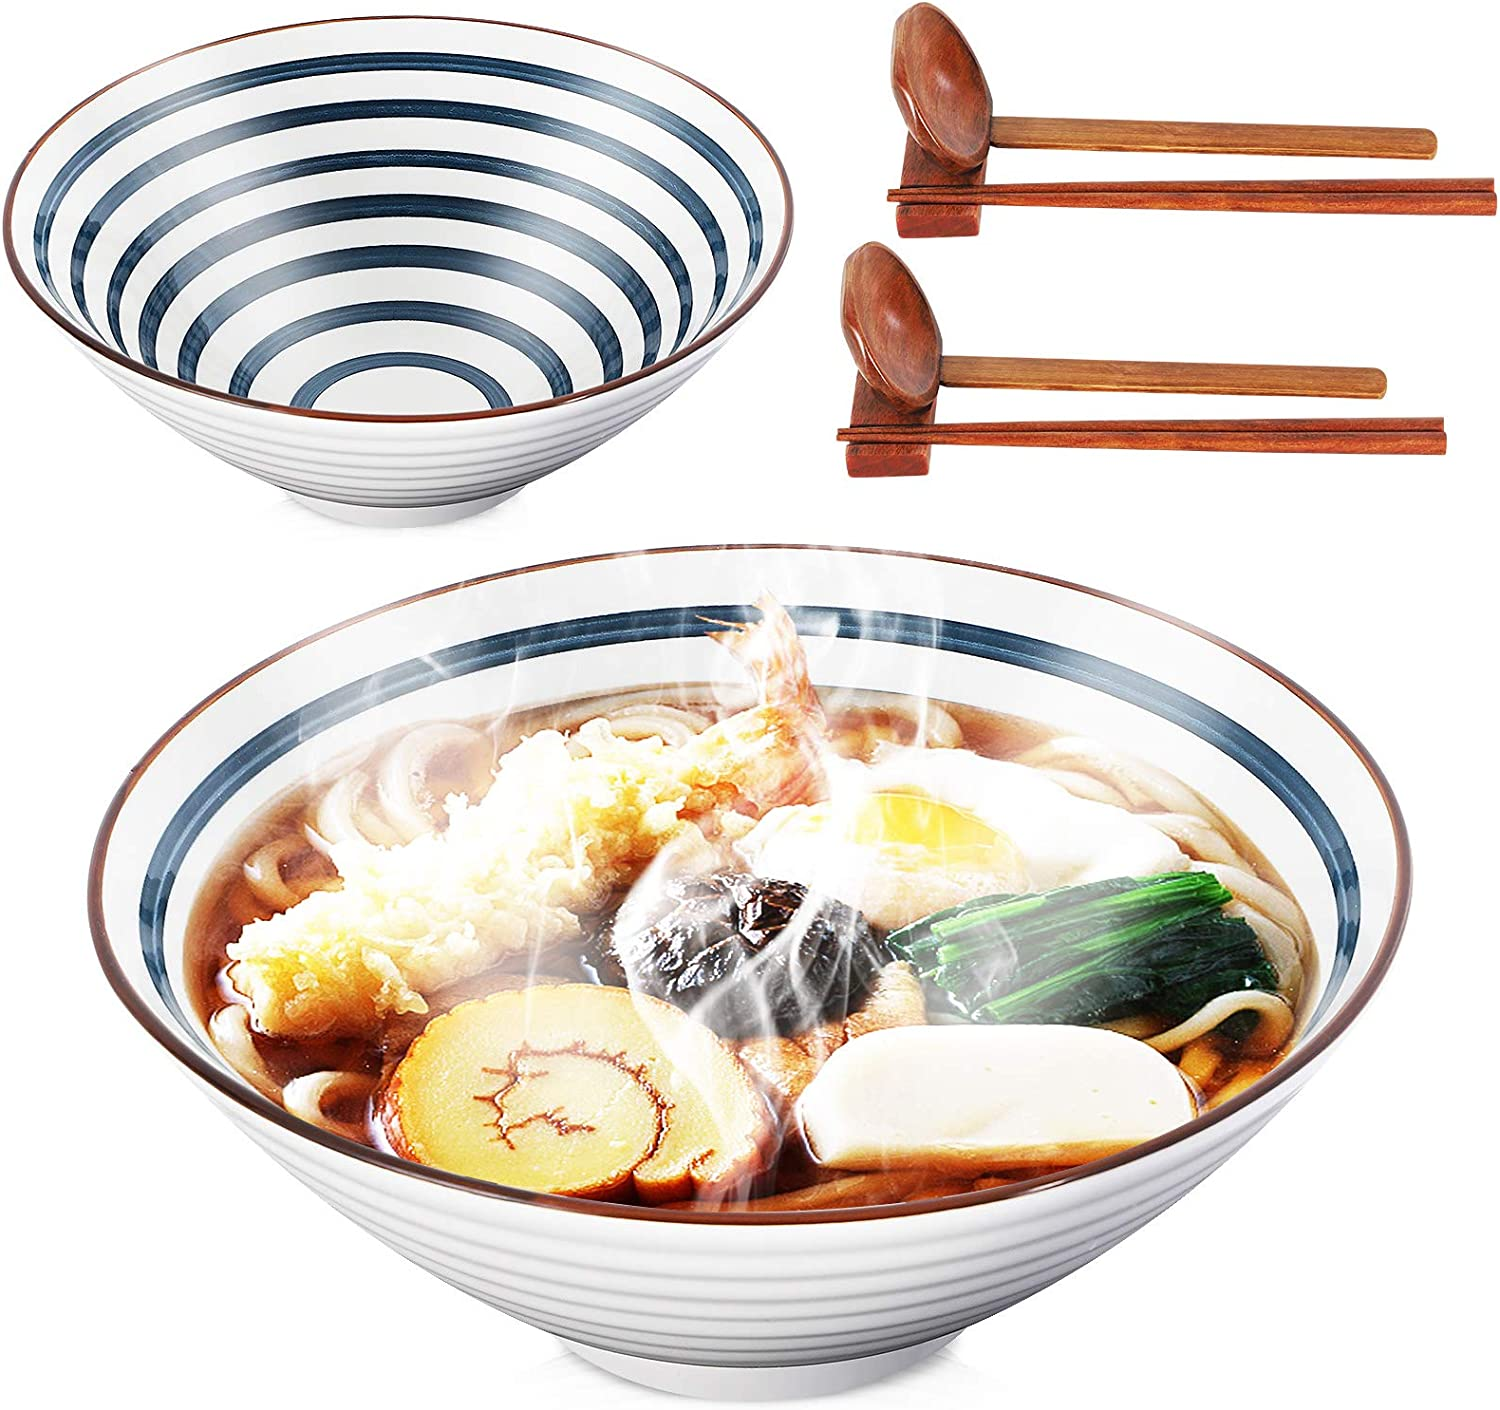 Ceramic Japanese Ramen Noodle Soup Bowl,2 Sets (8 Piece) 60 Ounce Large with Matching Spoon and Chopsticks and Racks for Salad Udon Soba Pho Asian Noodles, Steel Blue